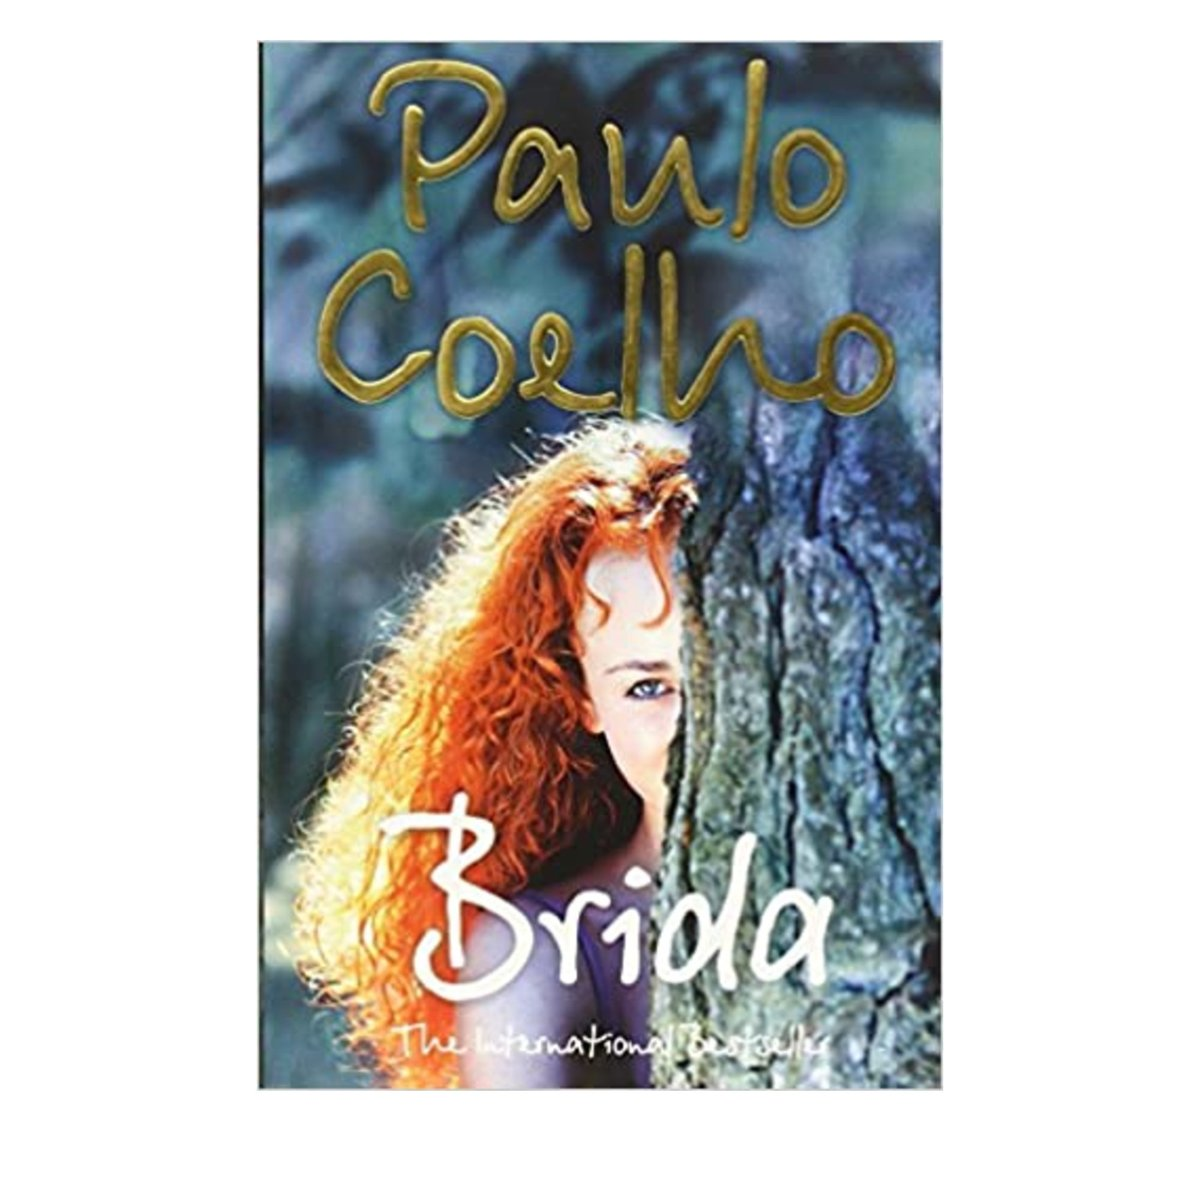 Excited to share the latest addition to my #etsy shop:  Brida Paperback – by Paulo Coelho (pre-owned)    #books   #literature #fiction #literaryfiction #paulocoelho #brida #paperback #novel #bestseller